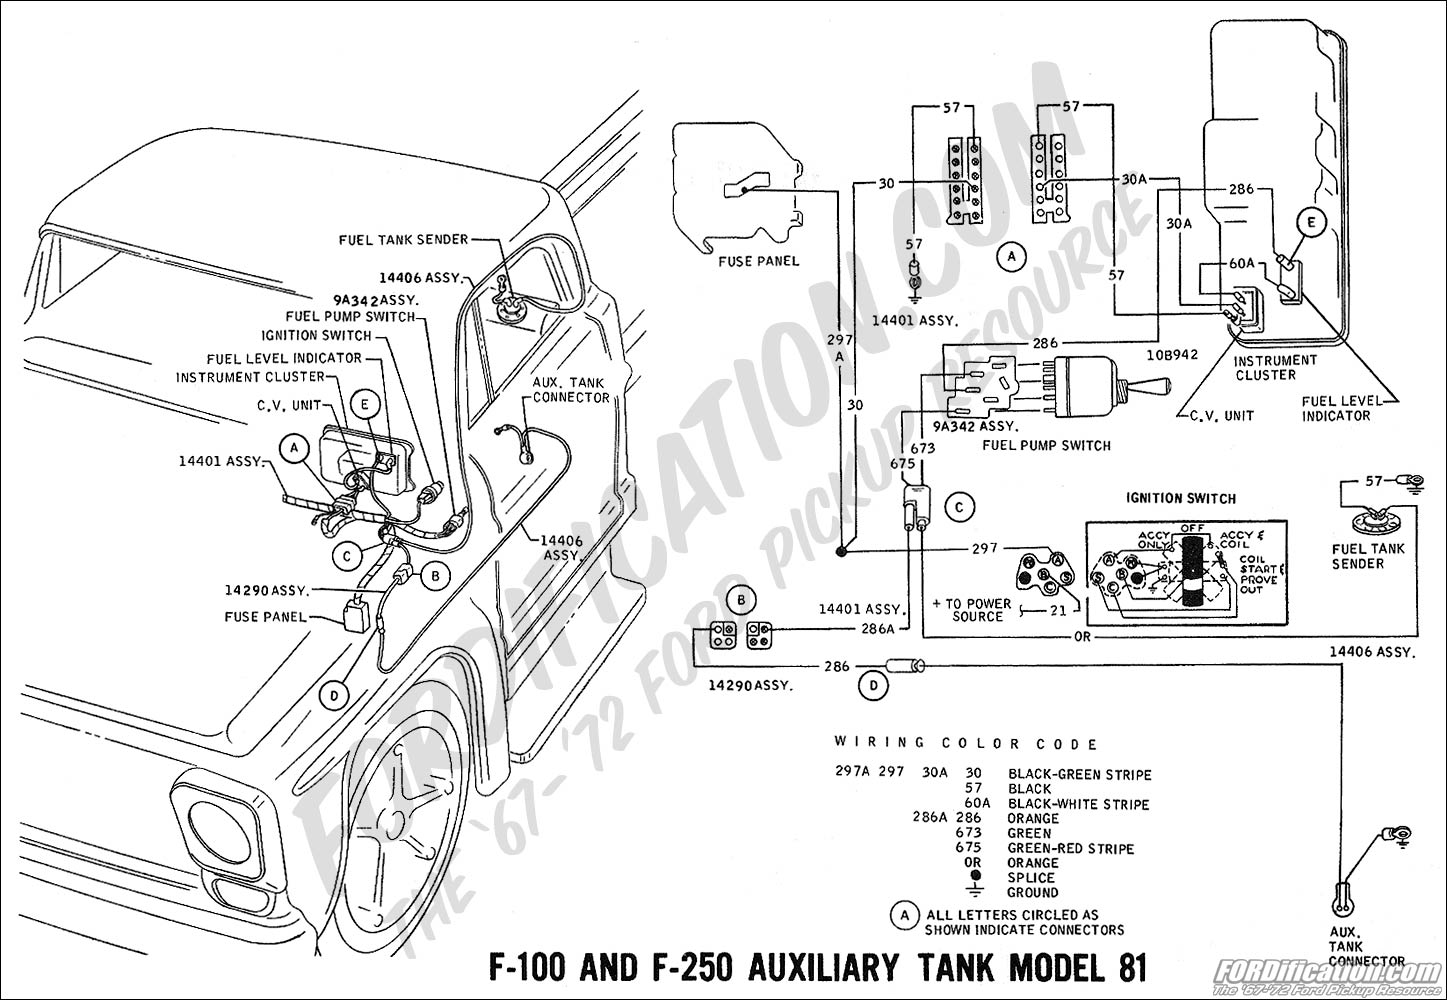 1321351 1978 F250 Supercab C er Special 351m 2wd Vacuum Problems further 1976 20 20Wiring 20Diagram moreover Windshield Wiper Switch Wiring Diagram Ford also Schematics h besides 981674 Steering Collum. on 79 bronco wiring diagram